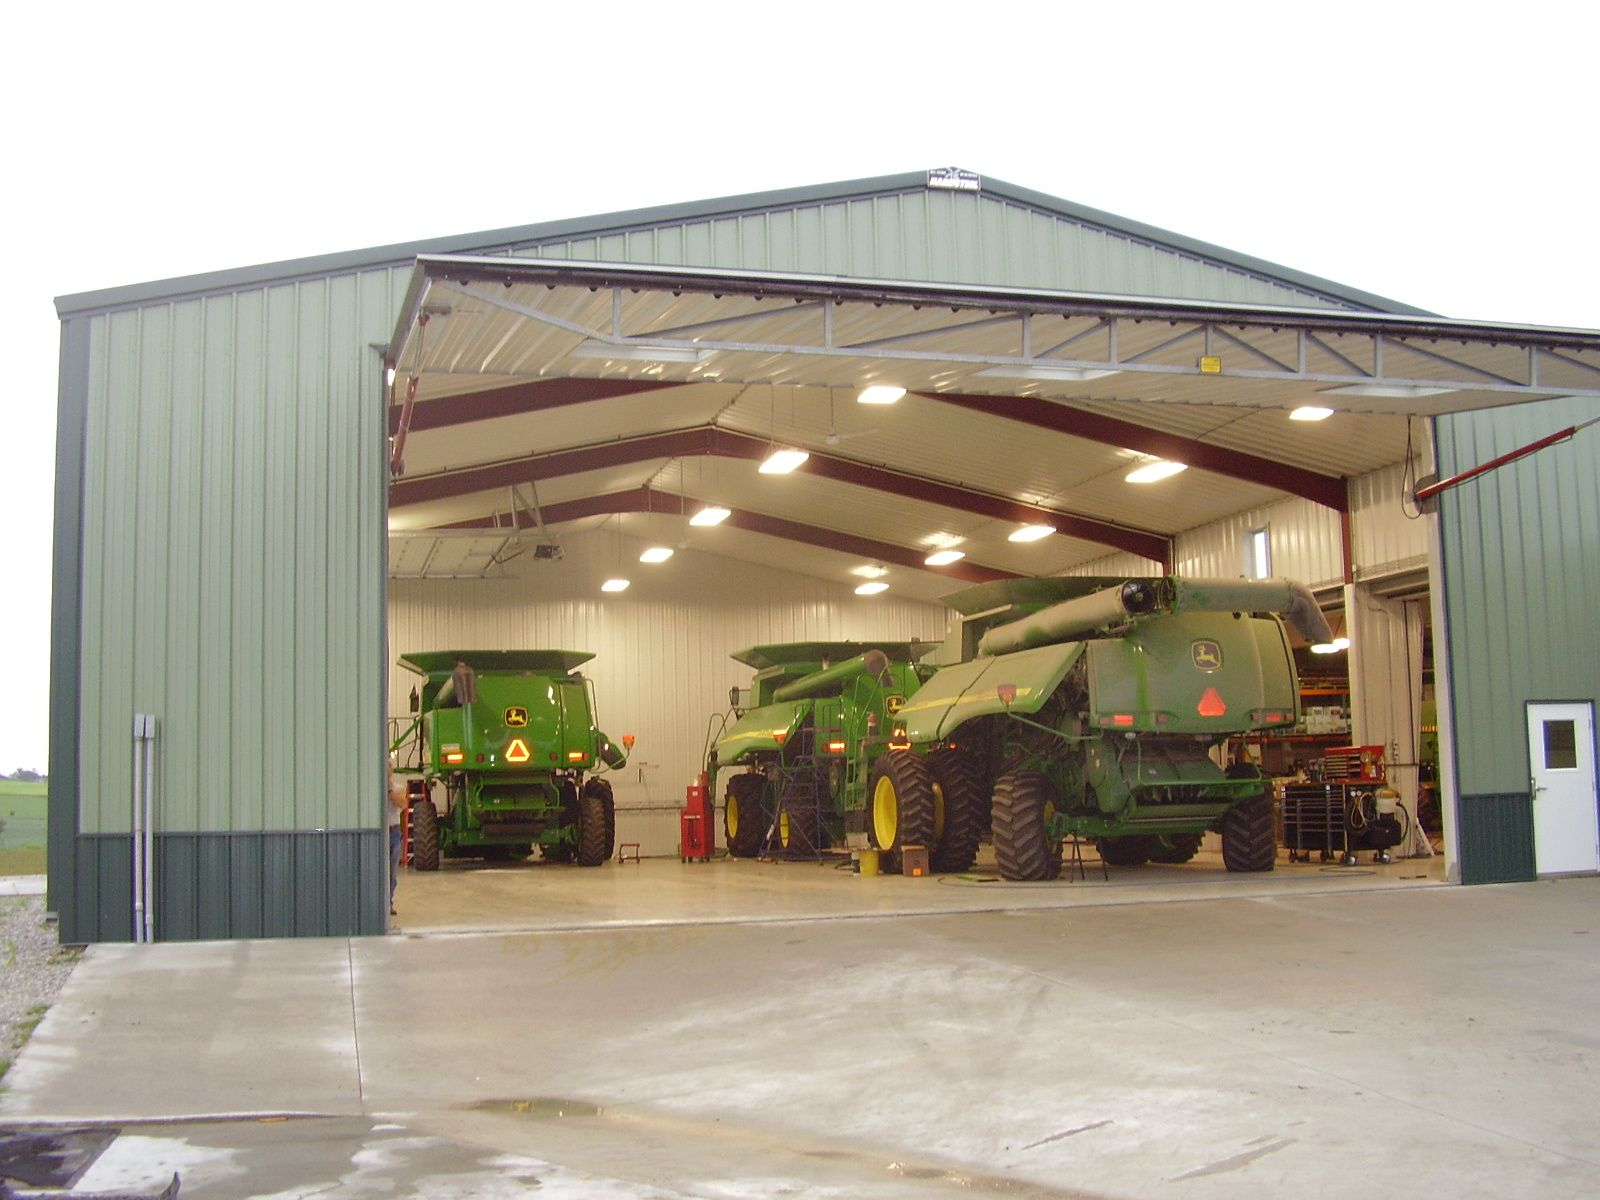 36.2 A Schweiss Hydraulic Farm Or Ranch Door When Open Provides A Nice Canopy  Or Awning